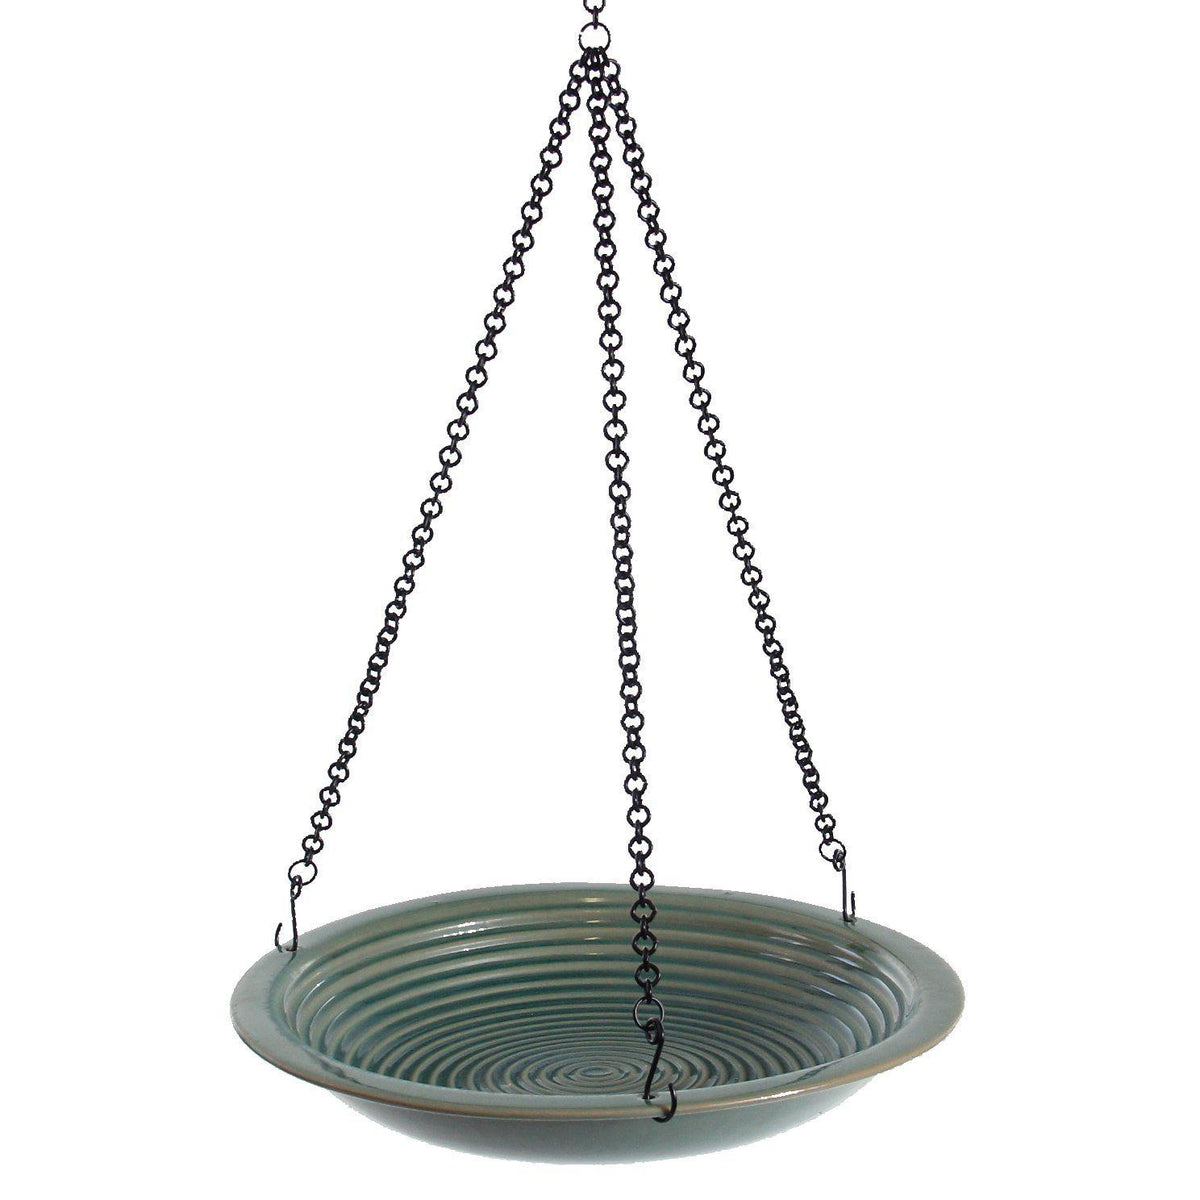 Circle Bird Bath - Jade Green